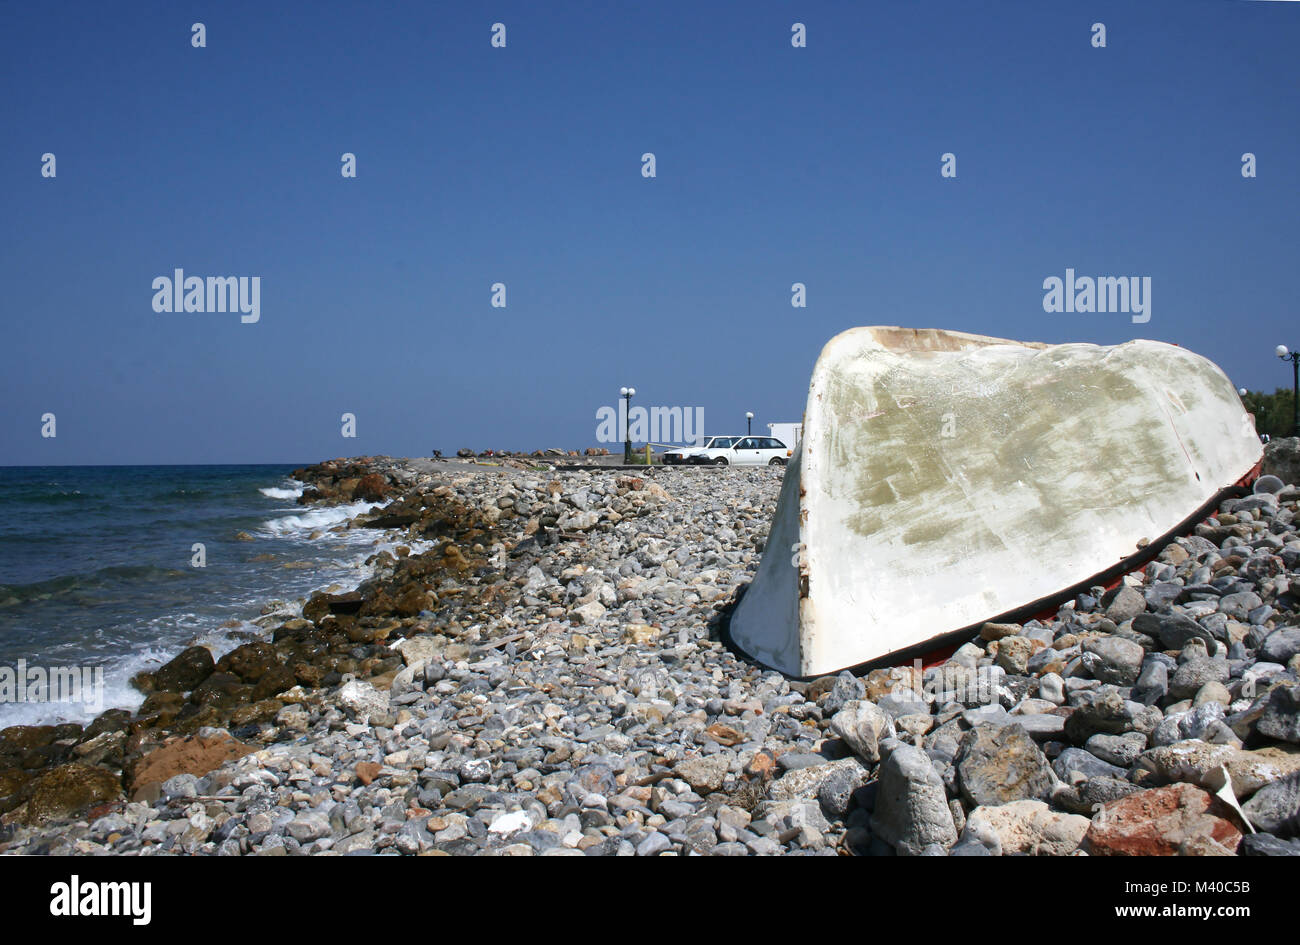 An upturned fishing boat of fibreglass construction on a pebble beach in Southern Crete - Stock Image